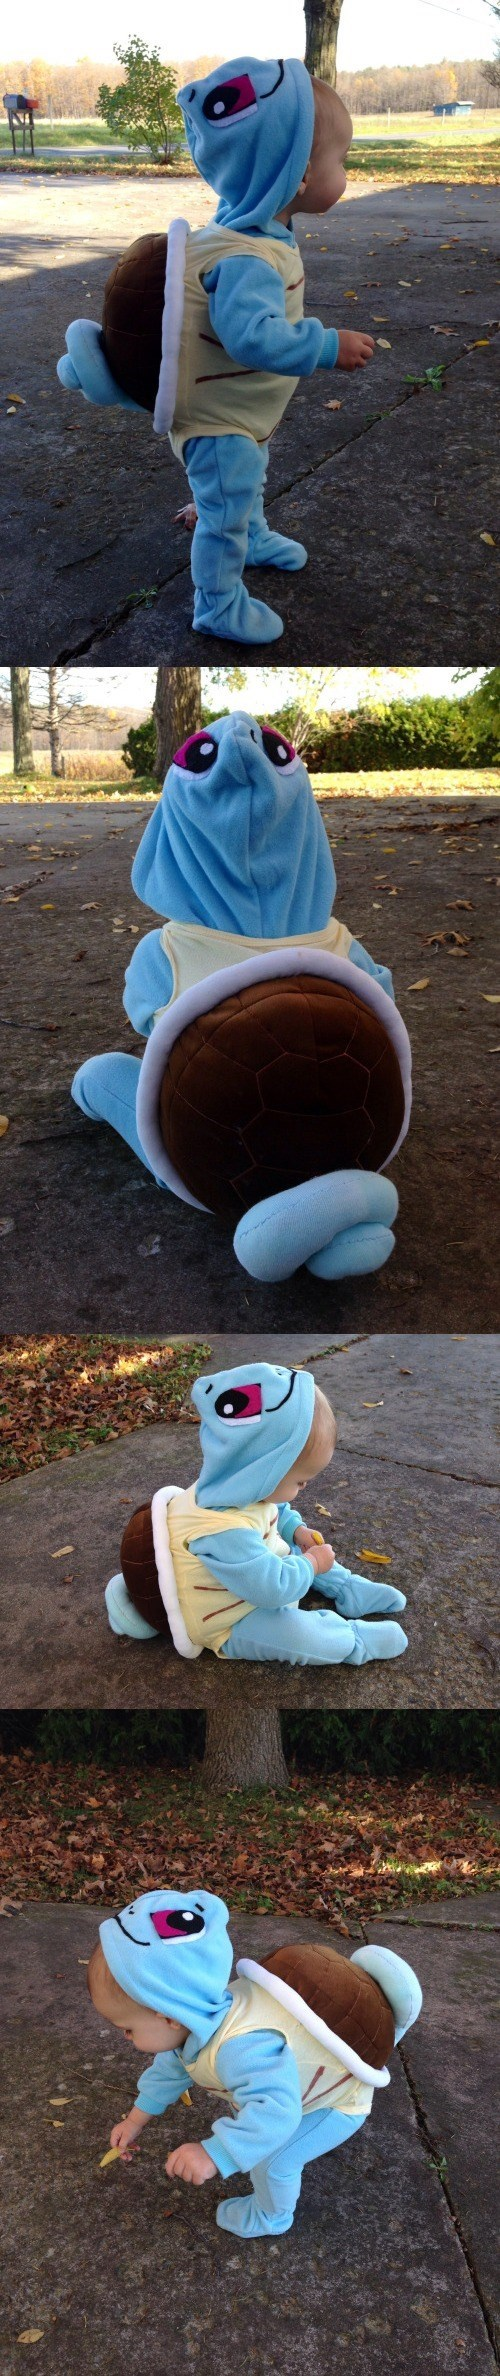 It Doesn't Get Cuter Than This Baby Squirtle